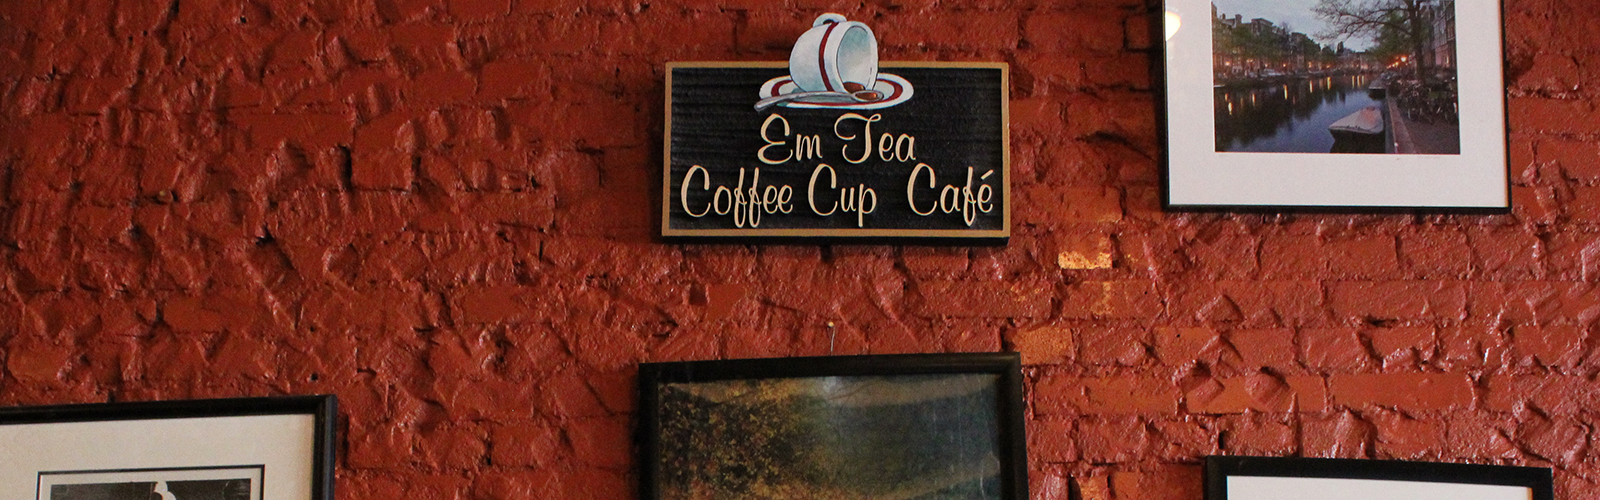 EmTea Coffee Cup Café is a quaint and inviting place for the community.